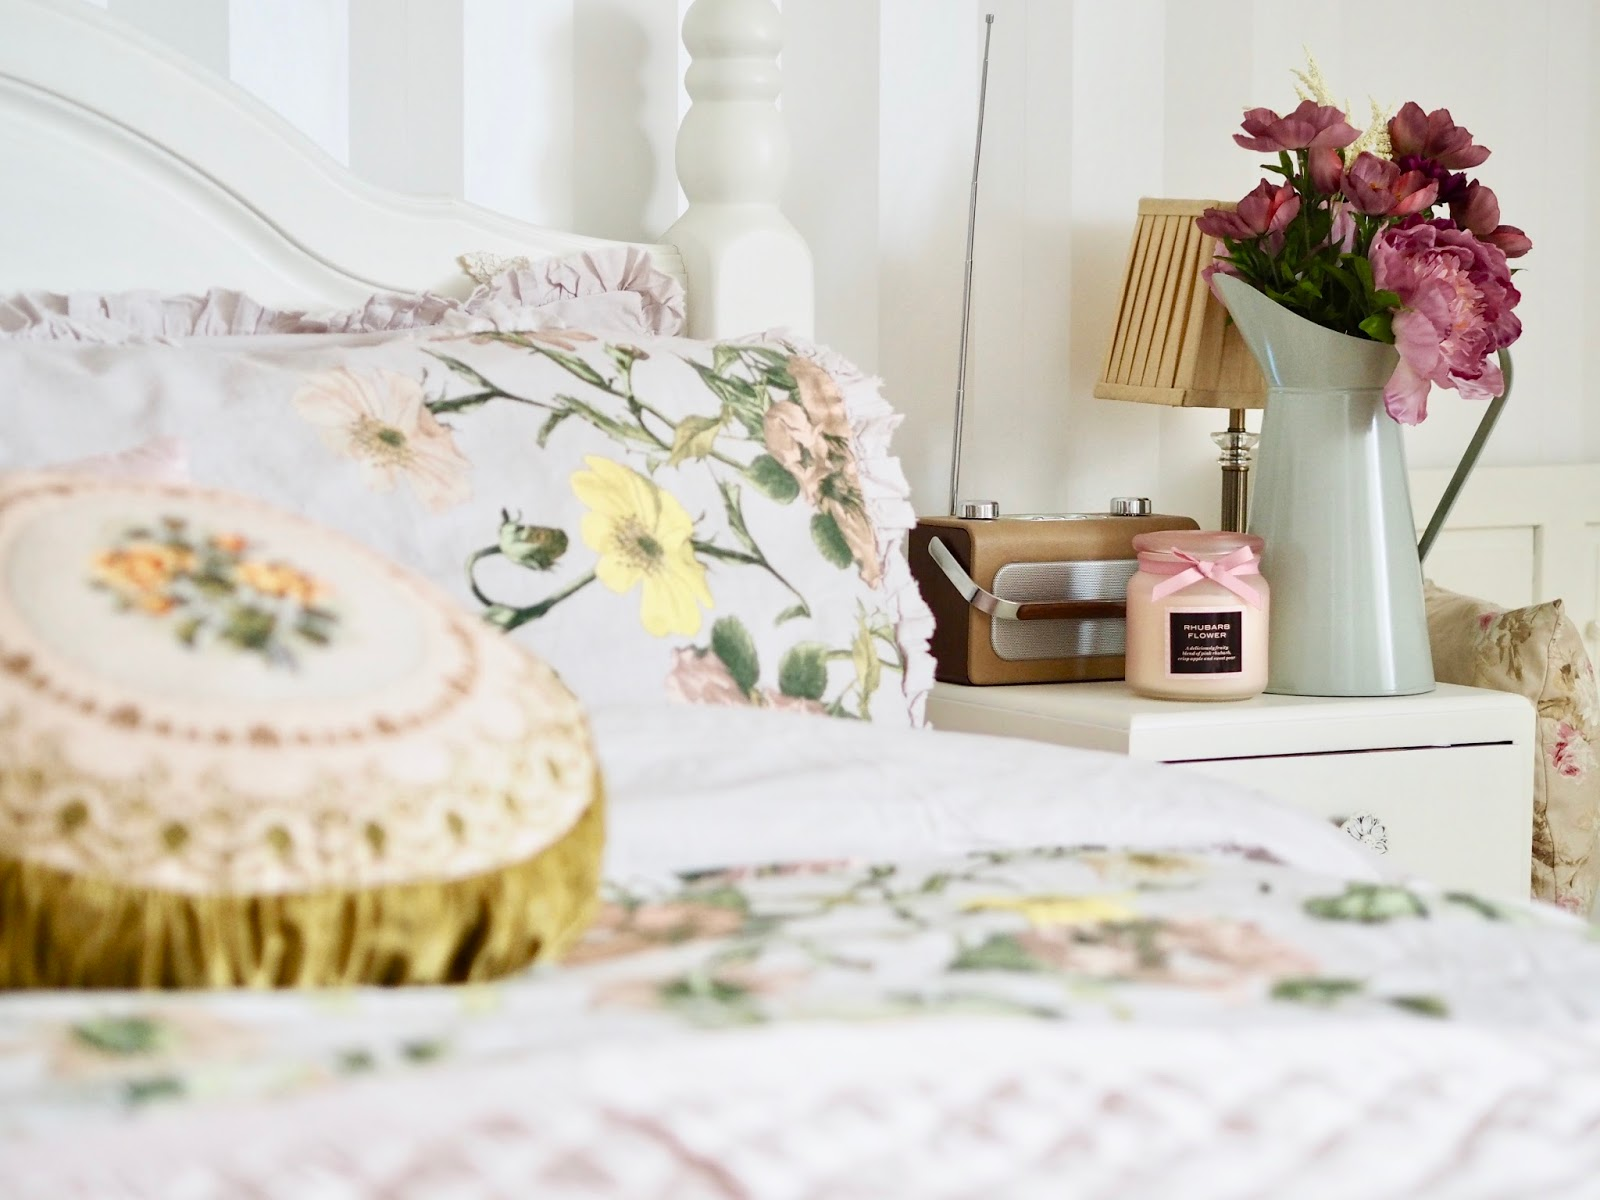 Ms Bedroom Furniture Spring Bedroom Refresh With Marks Spencer Ad The Dainty Dress